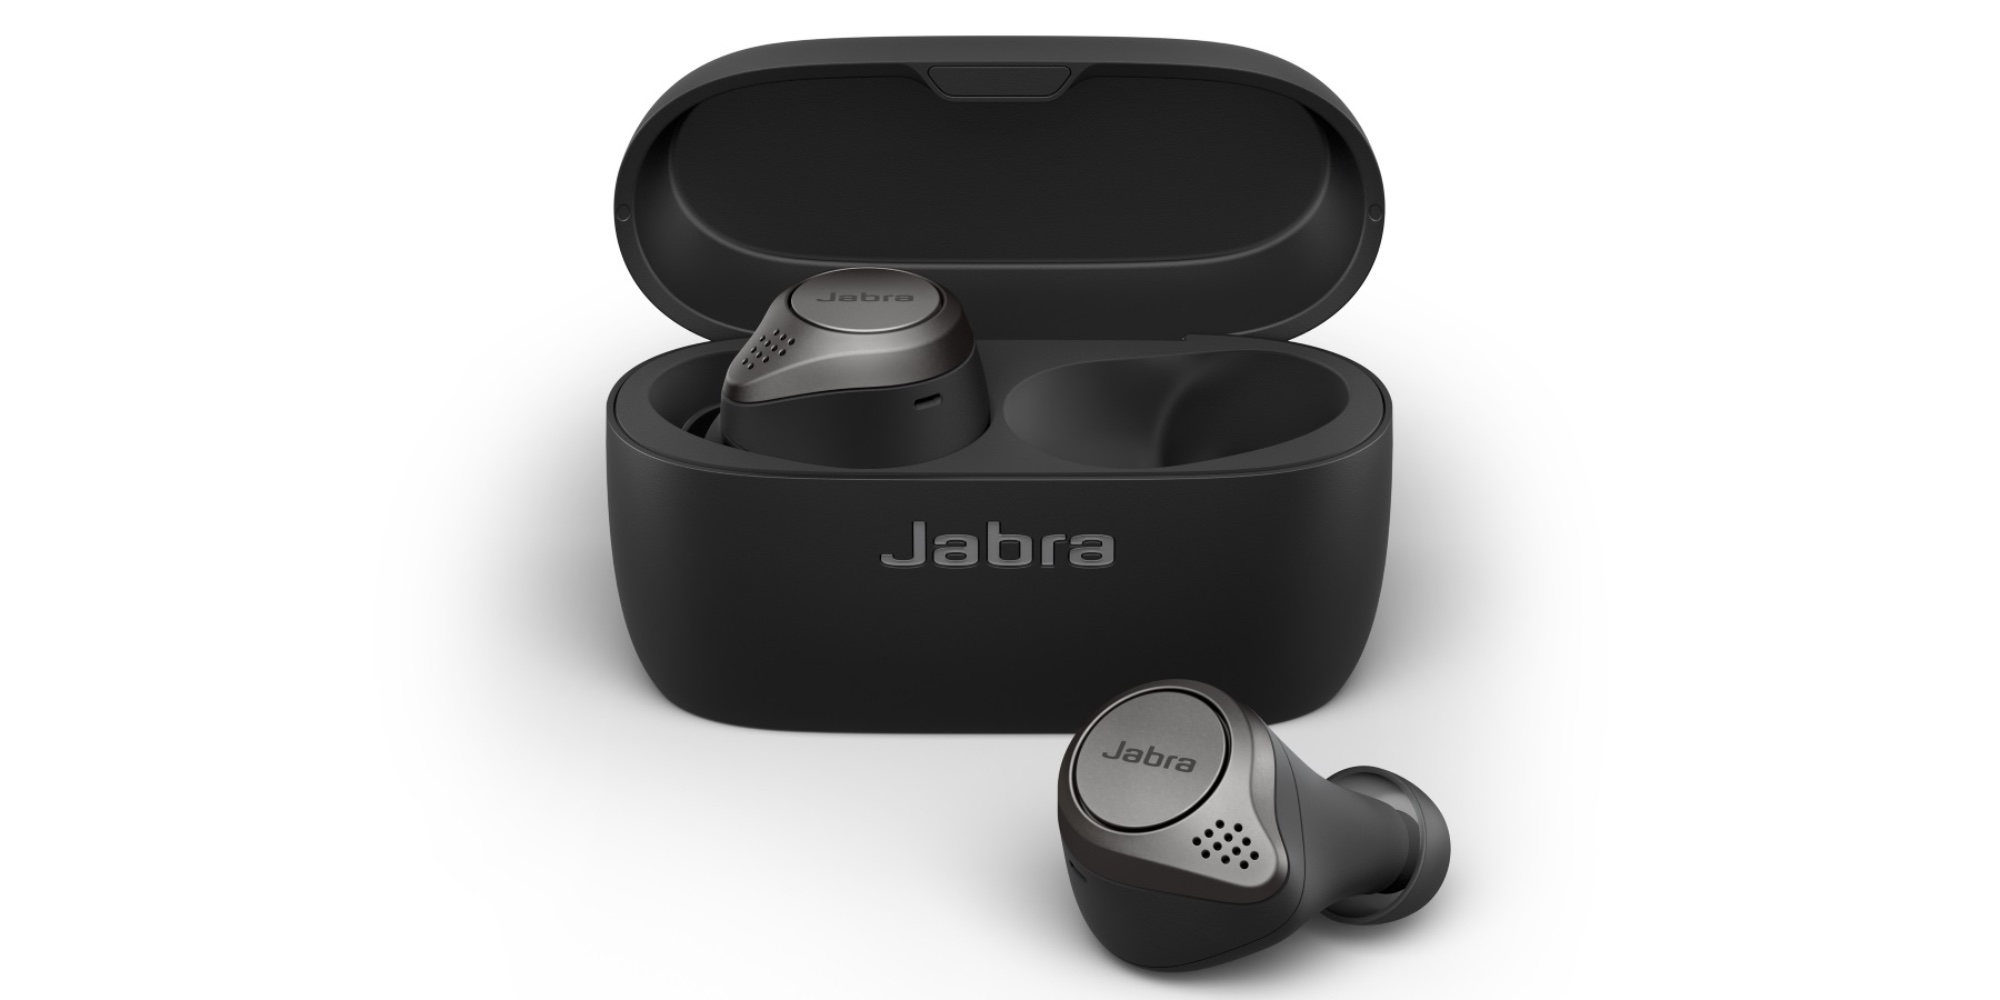 A New Low Brings Jabra S Elite 75t True Wireless Earbuds To 150 Save 30 9to5toys